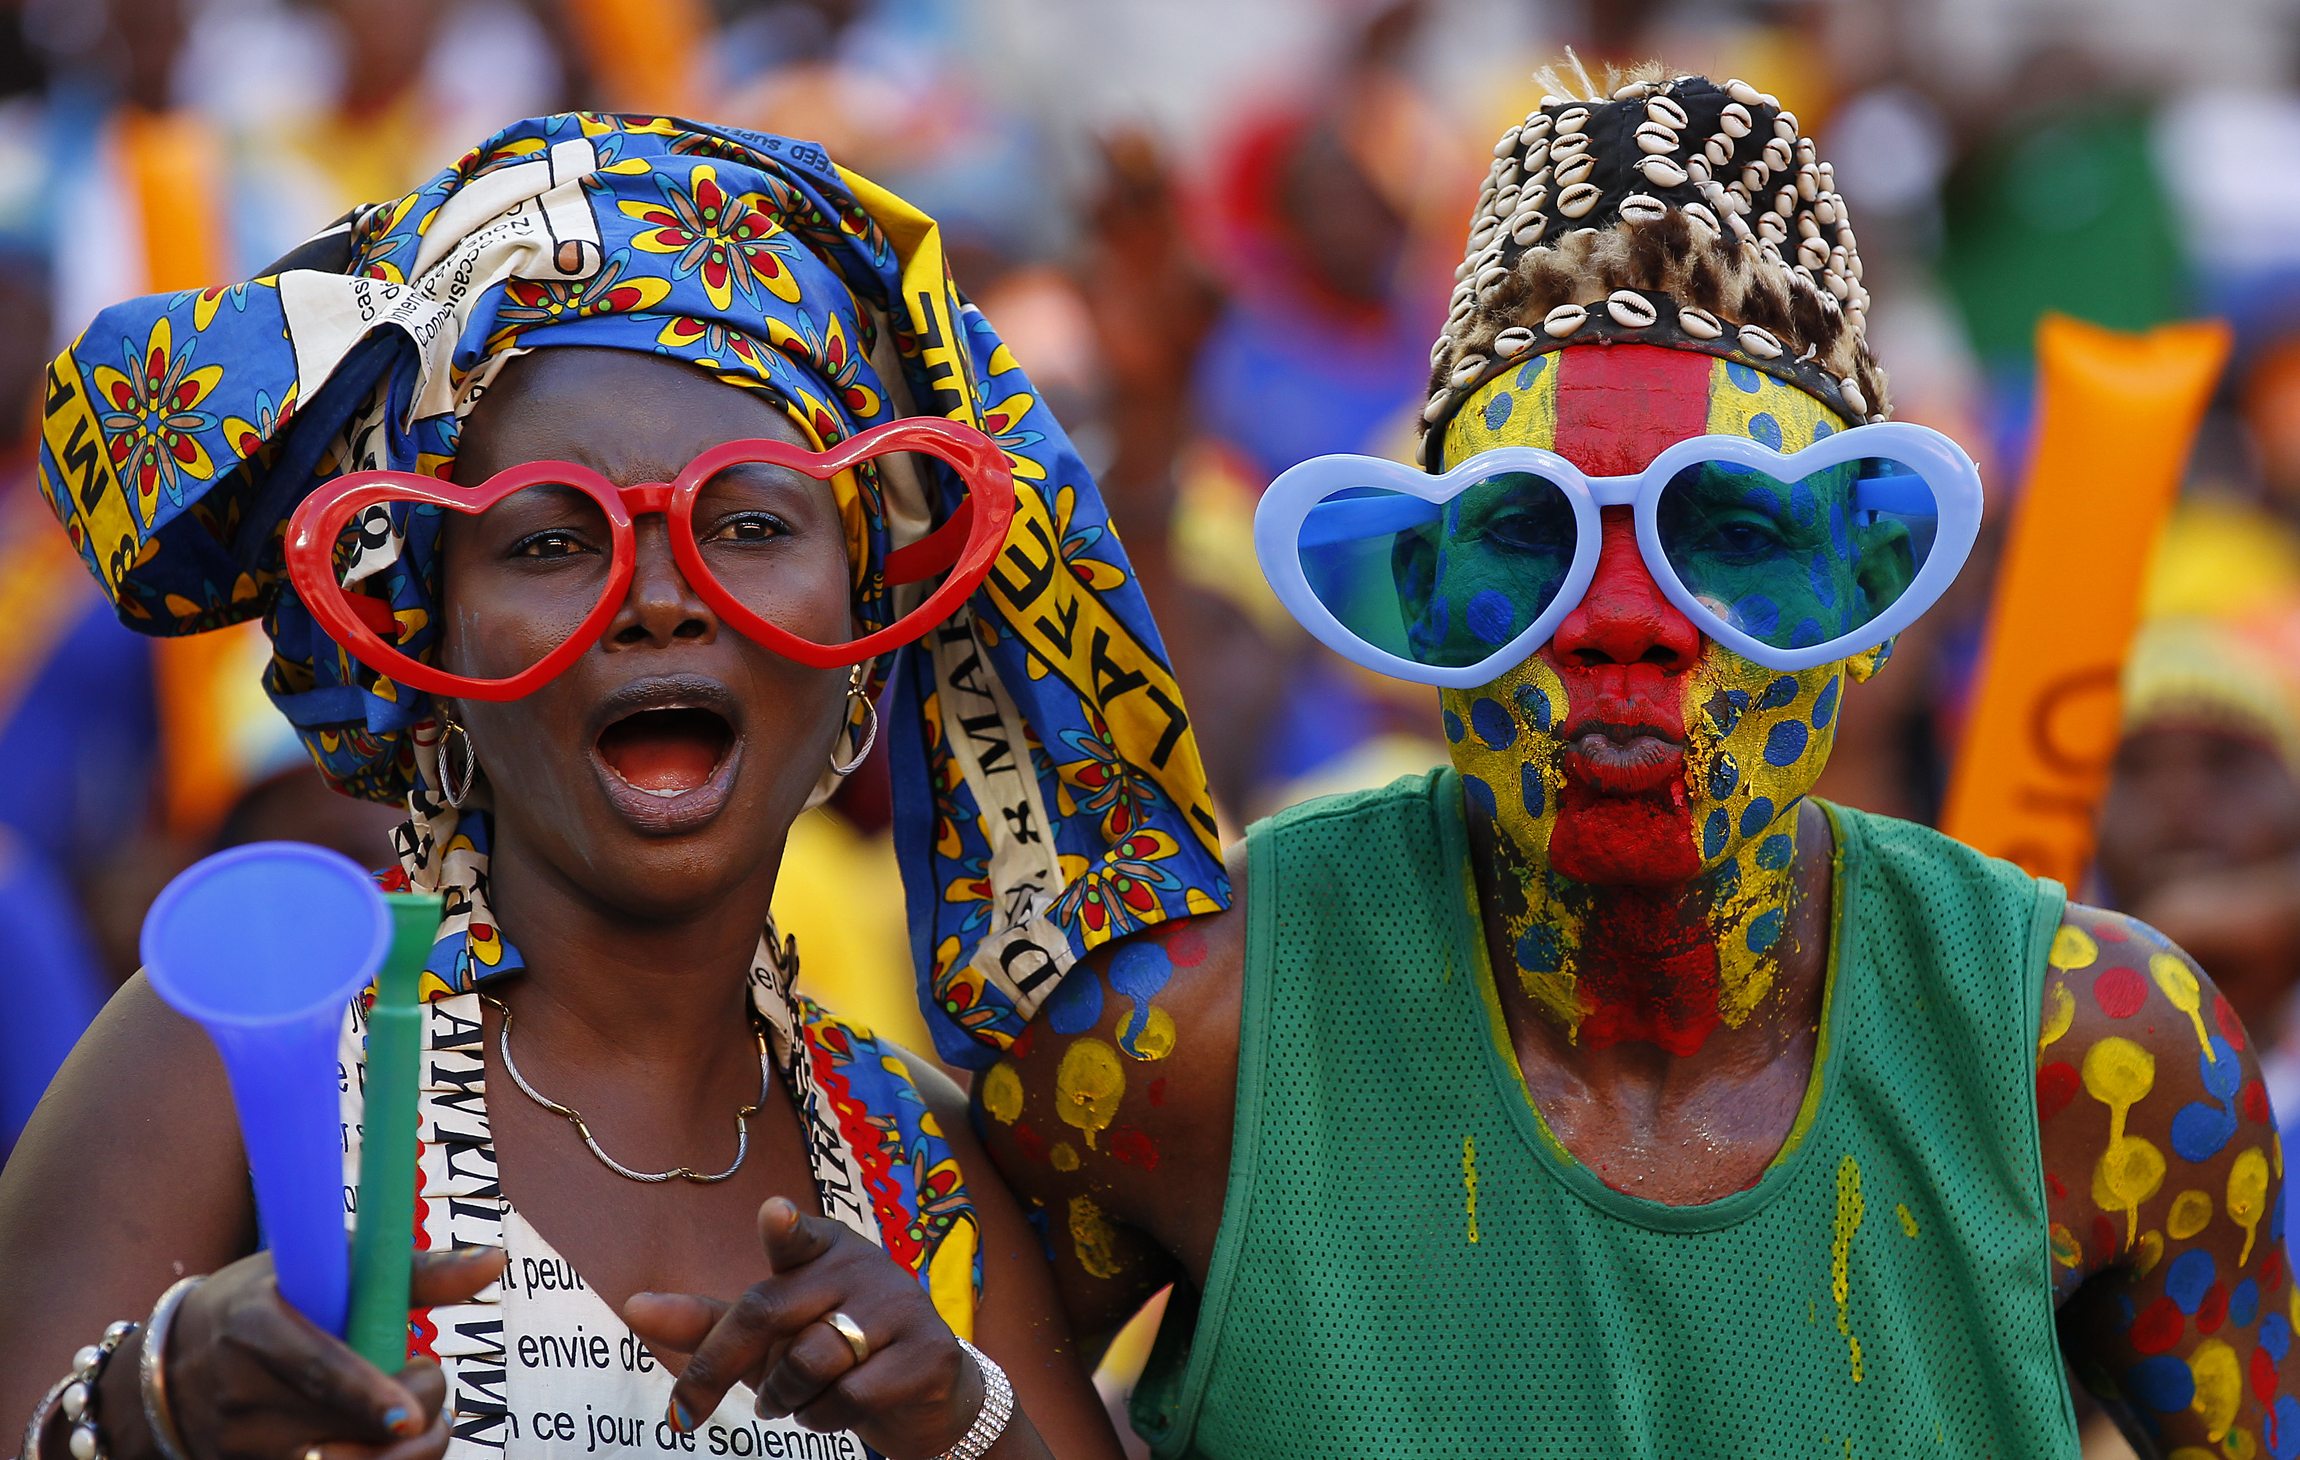 https://i2.wp.com/blogs.voanews.com/sonny/files/2013/02/DRC-fans_AFCON2013.jpg